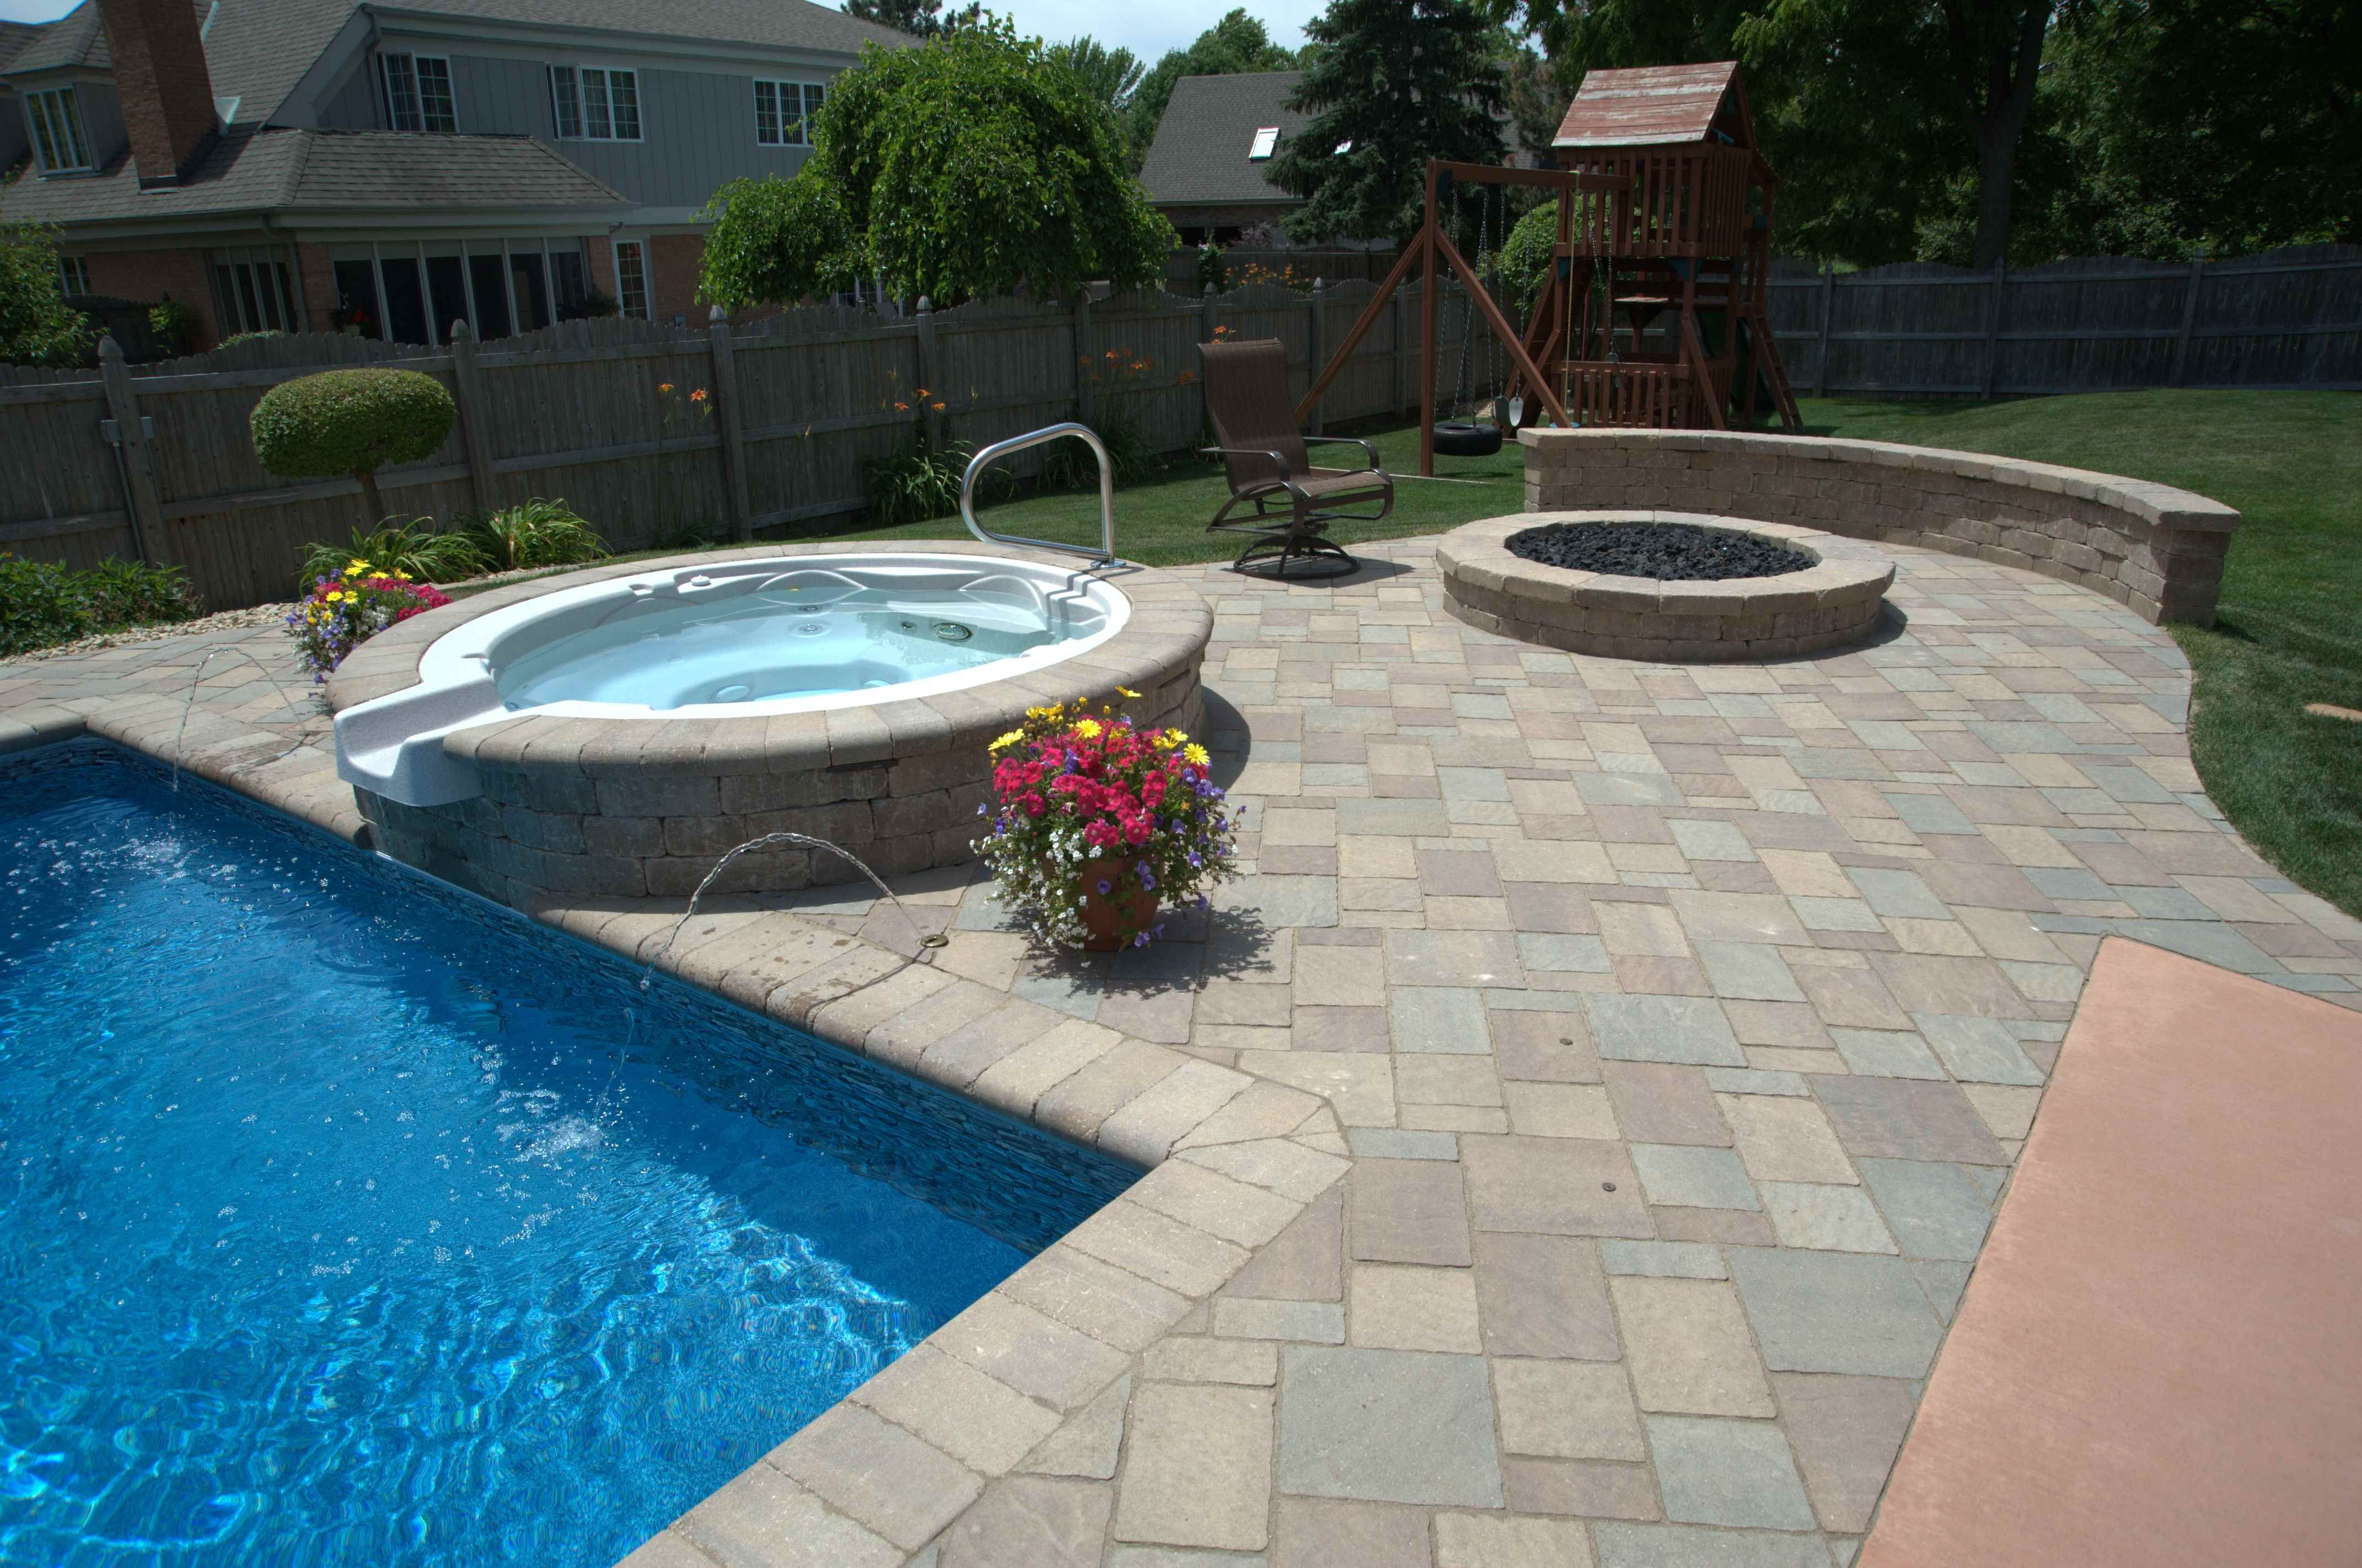 Elevated Spa And Natural Gas Fire Pit Complete This Backyard Pool Remodeling Project Backyard Remodel Pool Remodel Spa Pool